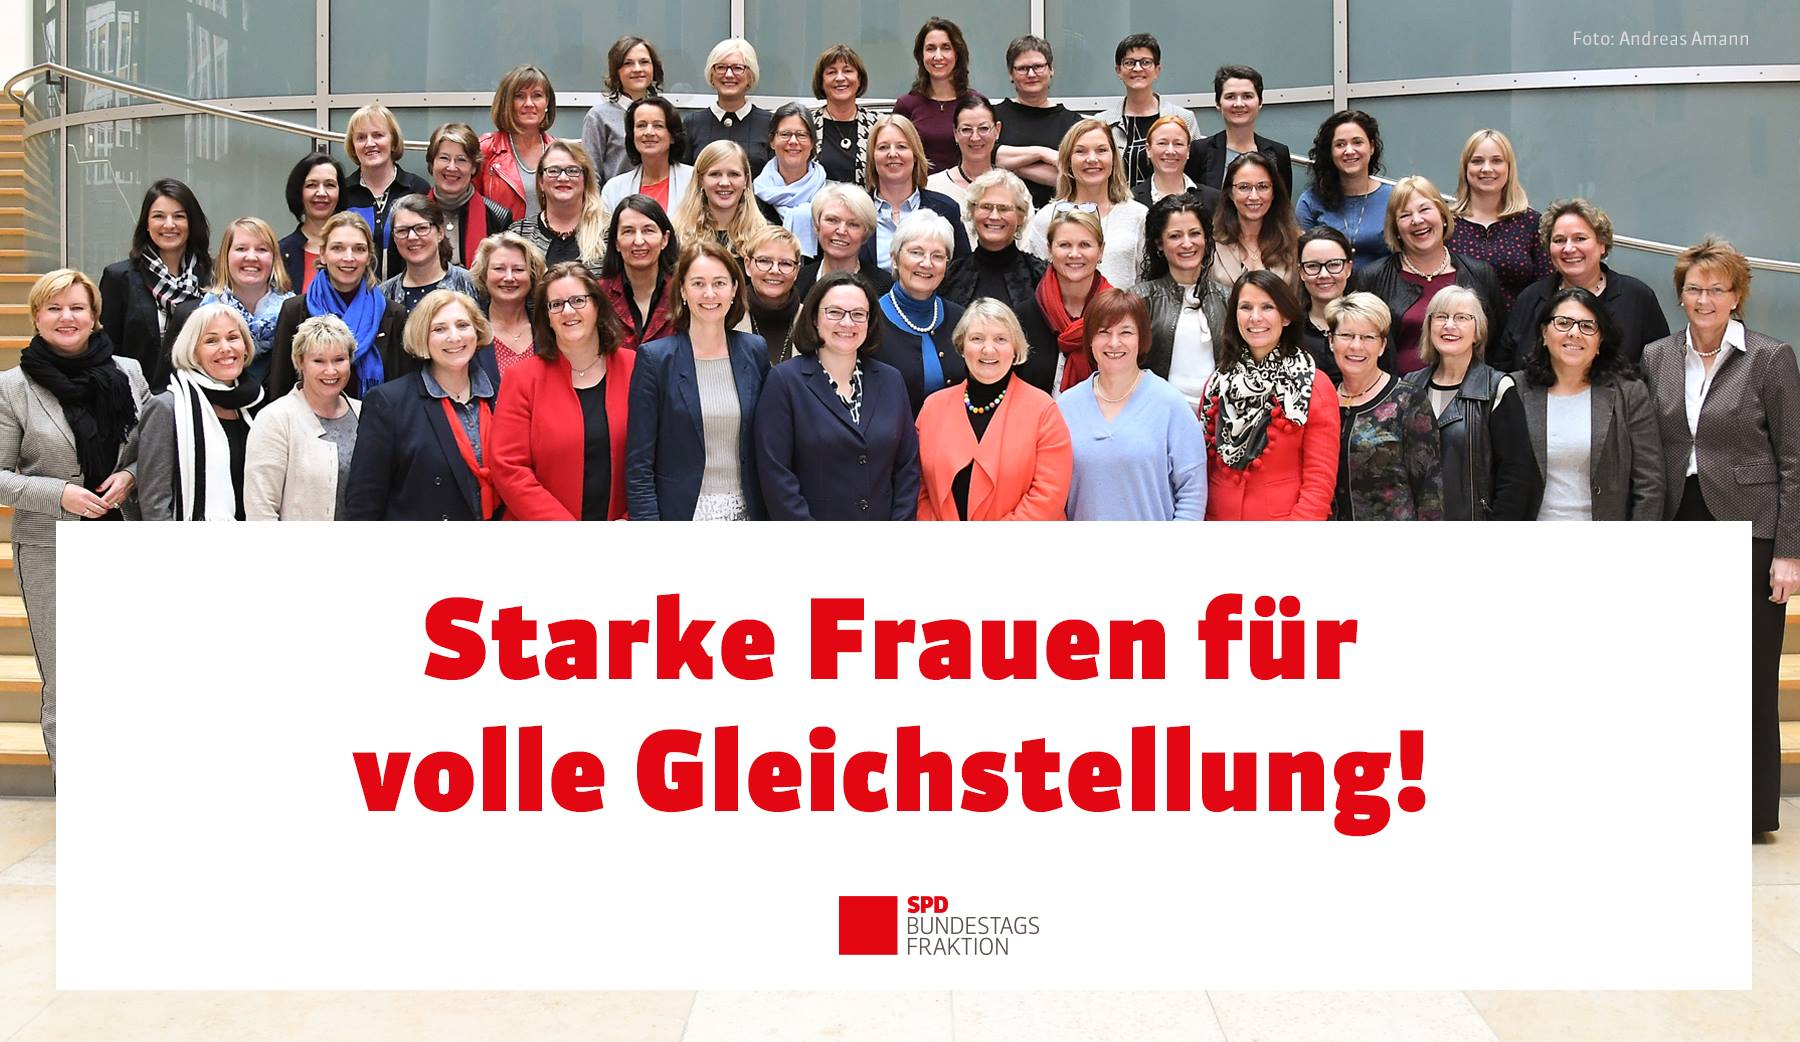 Die Frauen der SPD-Bundestagsfraktion in der 19. Legislaturperiode © Andreas Amann